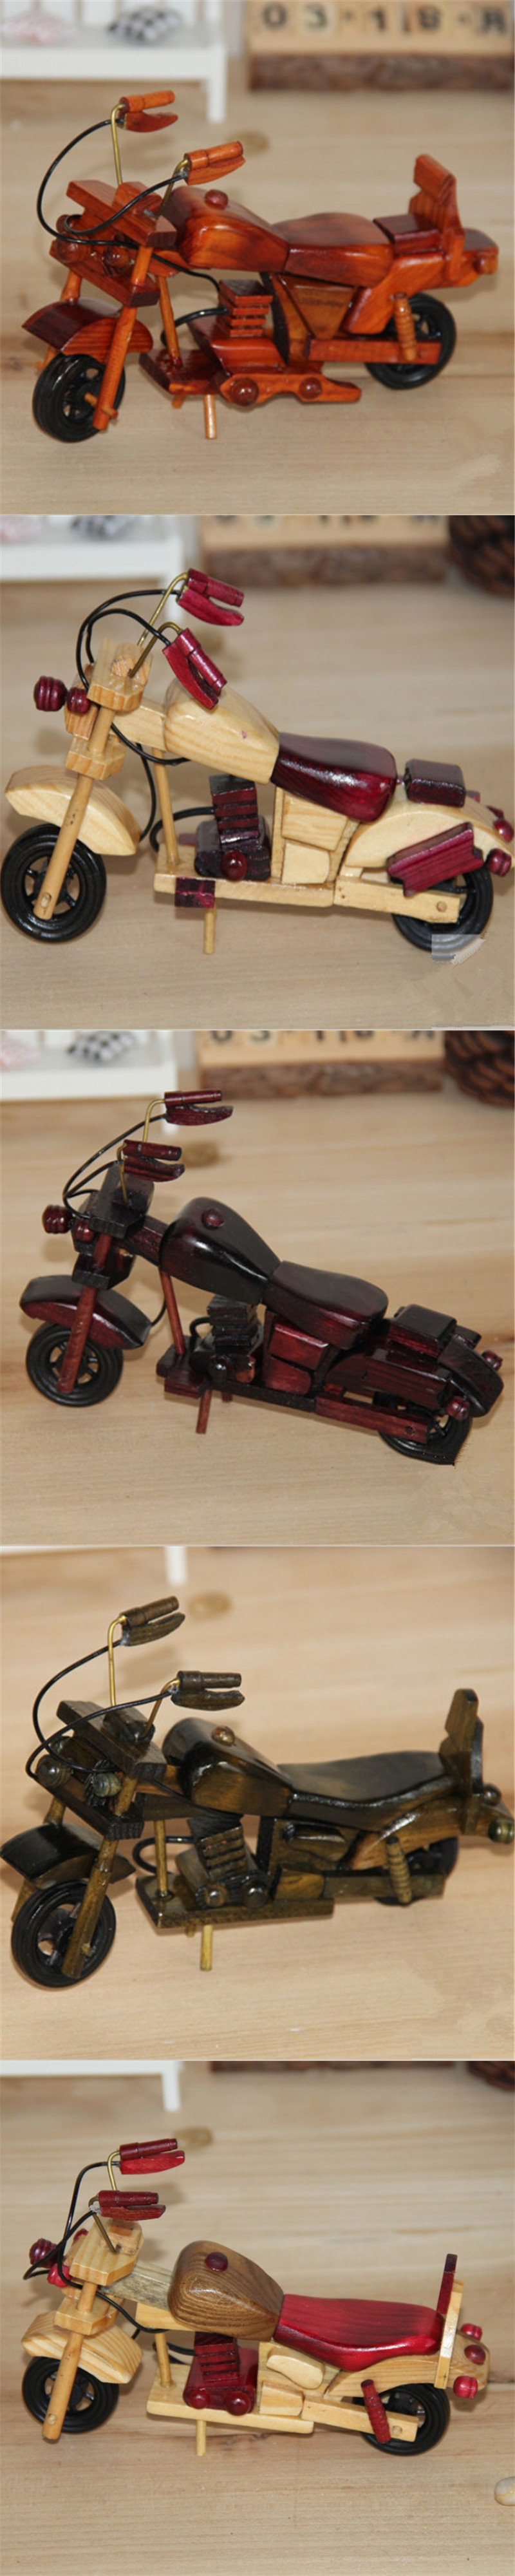 Creative Retro Handmade Wooden Motorcycle Model Children Toy Car Gift Home Decor Random Color $12.99